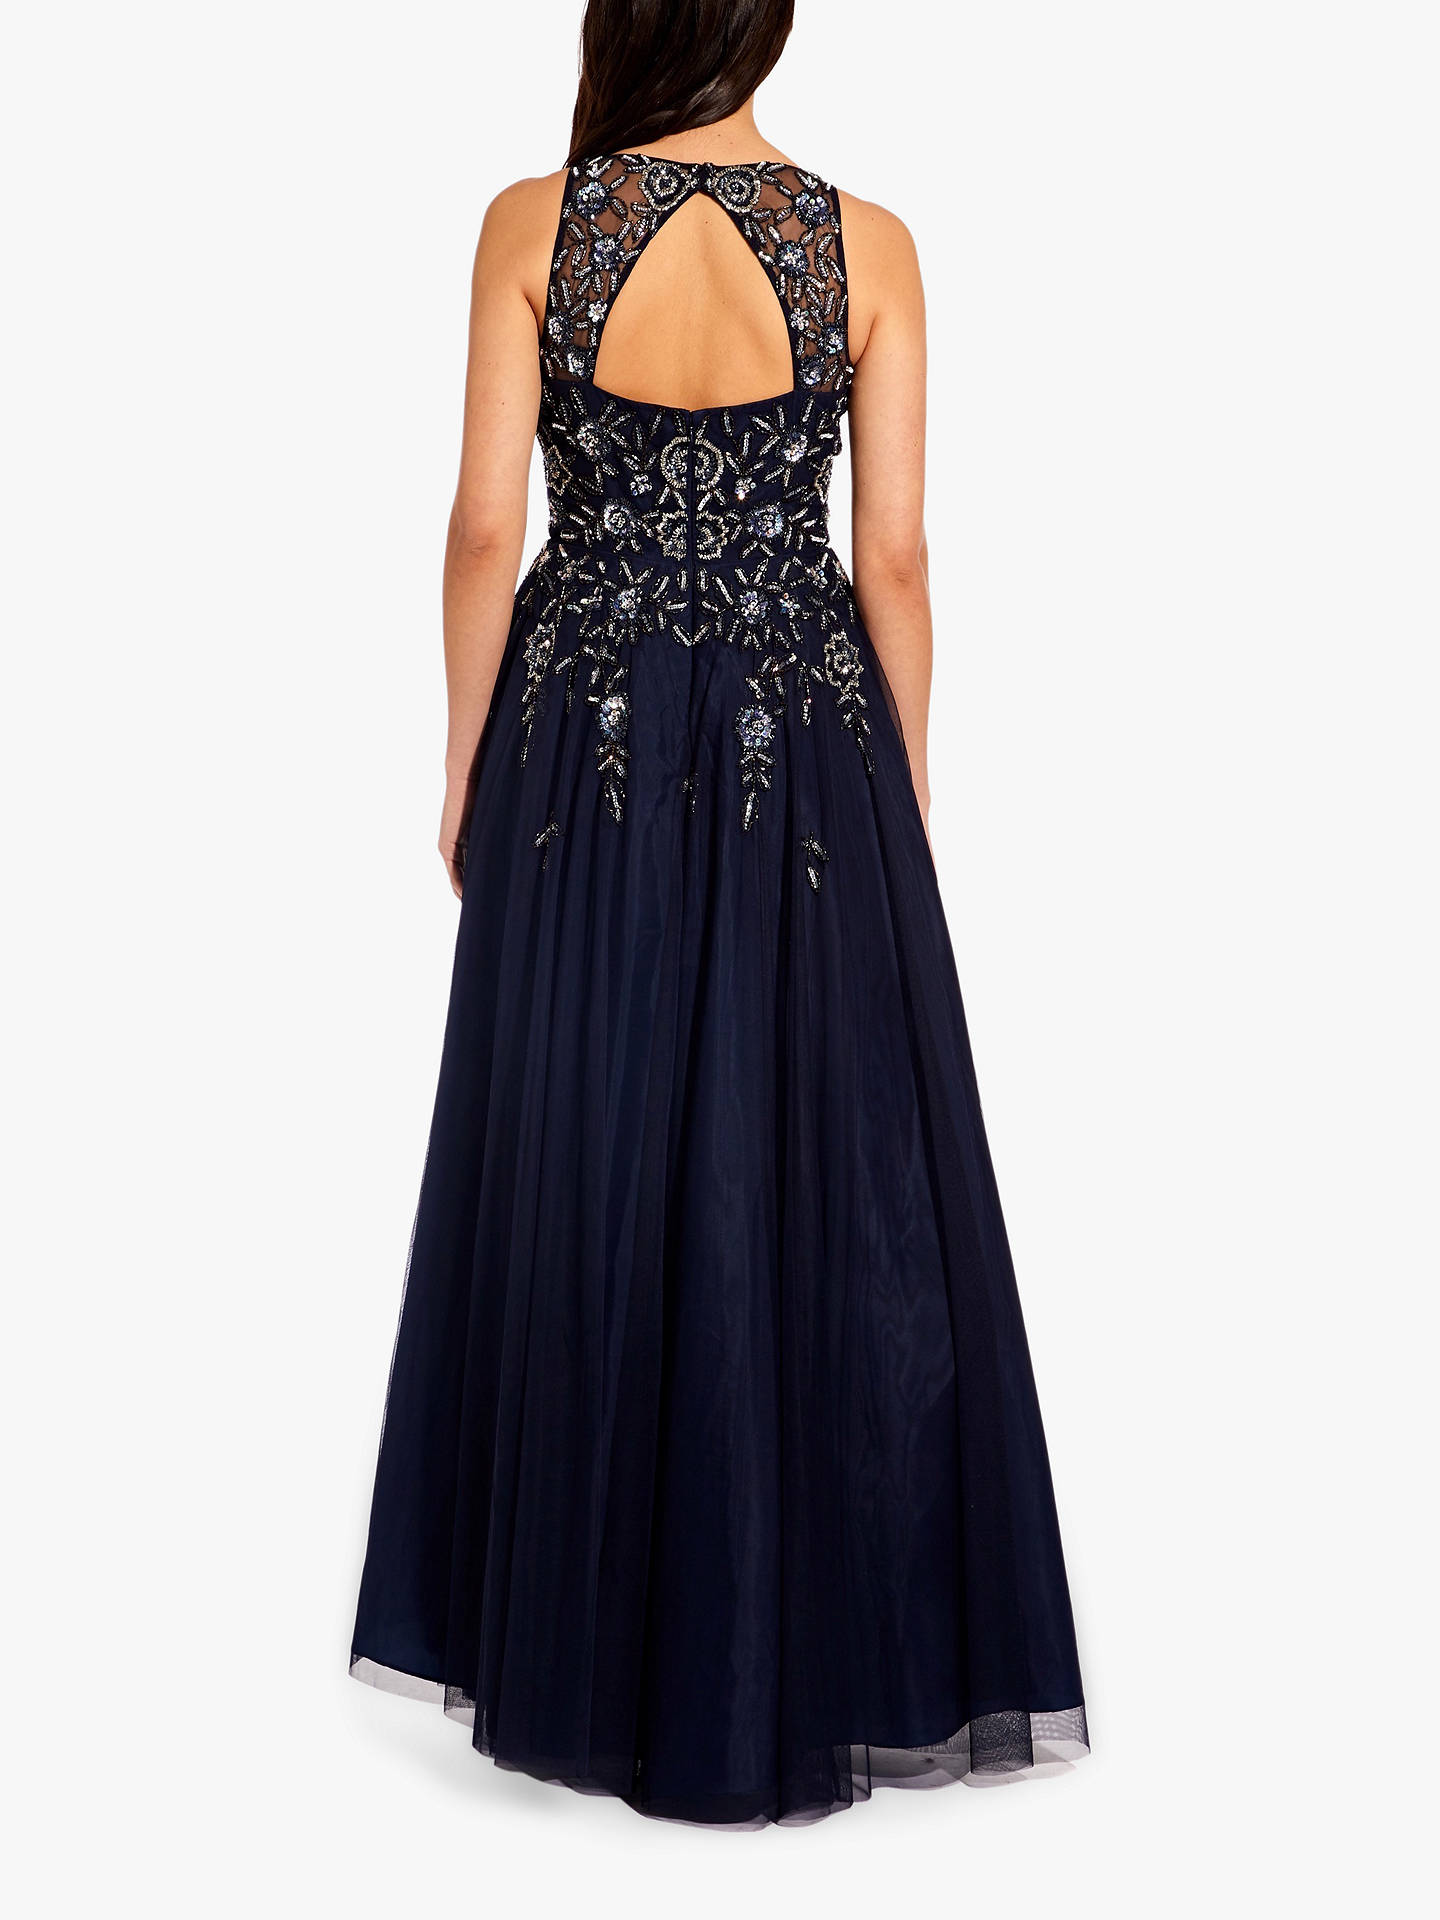 63ccb88298 ... Buy Adrianna Papell Beaded Mesh Maxi Dress, Navy, 6 Online at  johnlewis.com ...